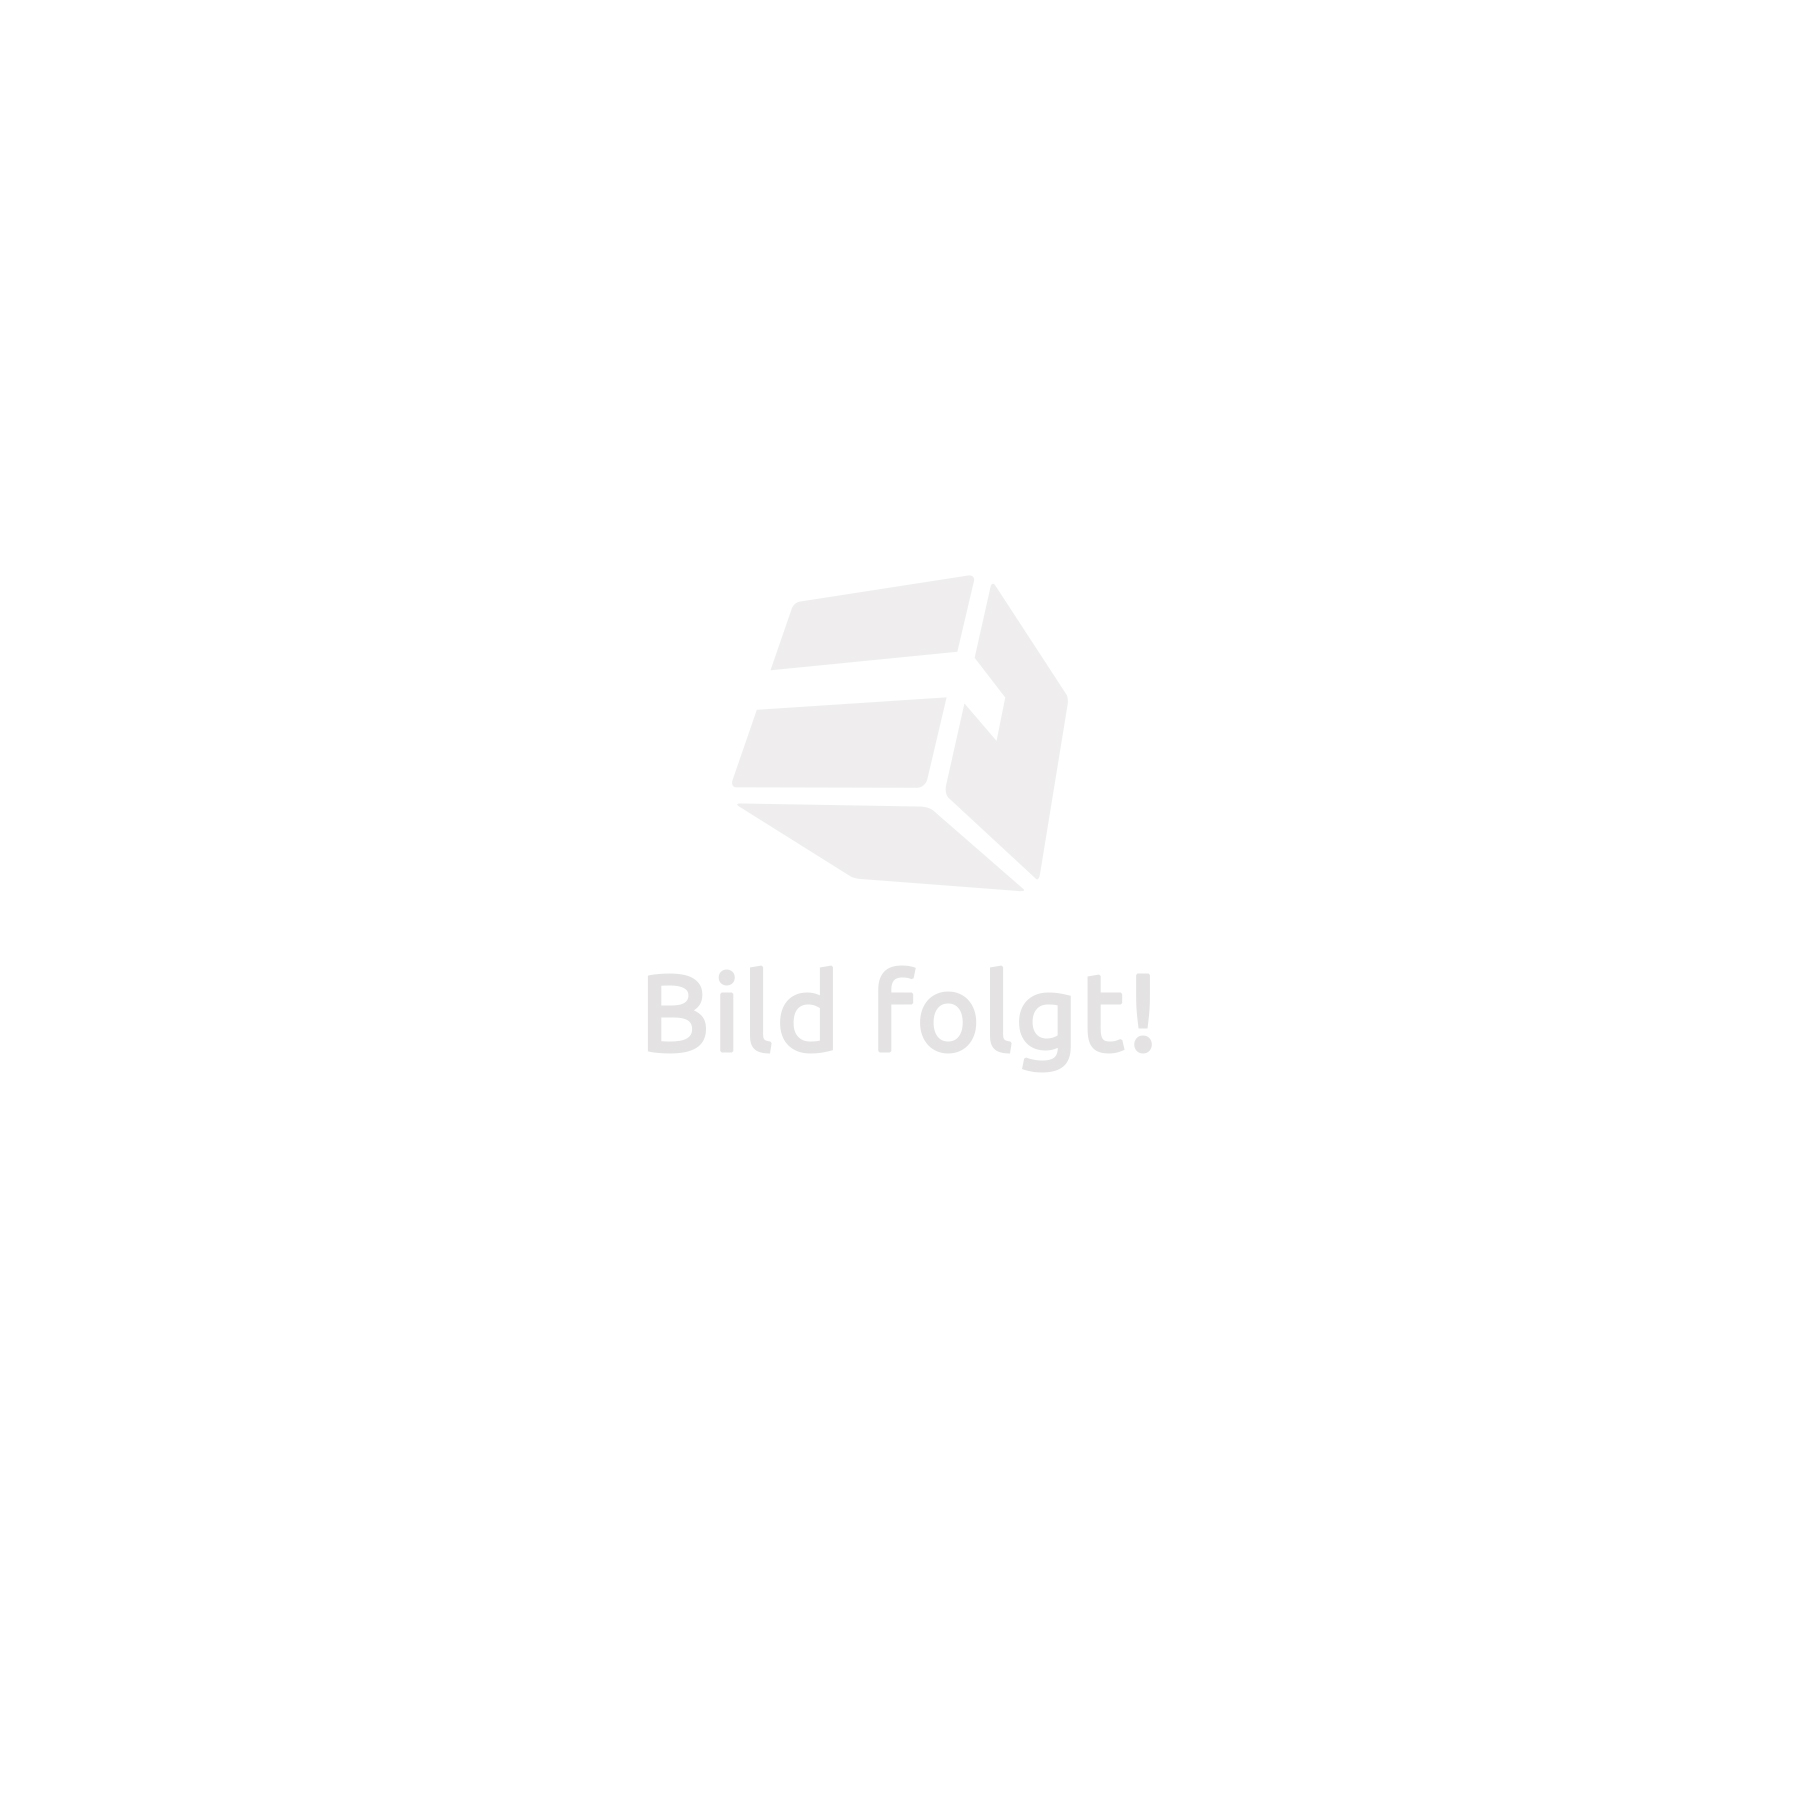 Tente enfant, Tente Igloo + Tunnel + 200 Balles + Sac multicolore